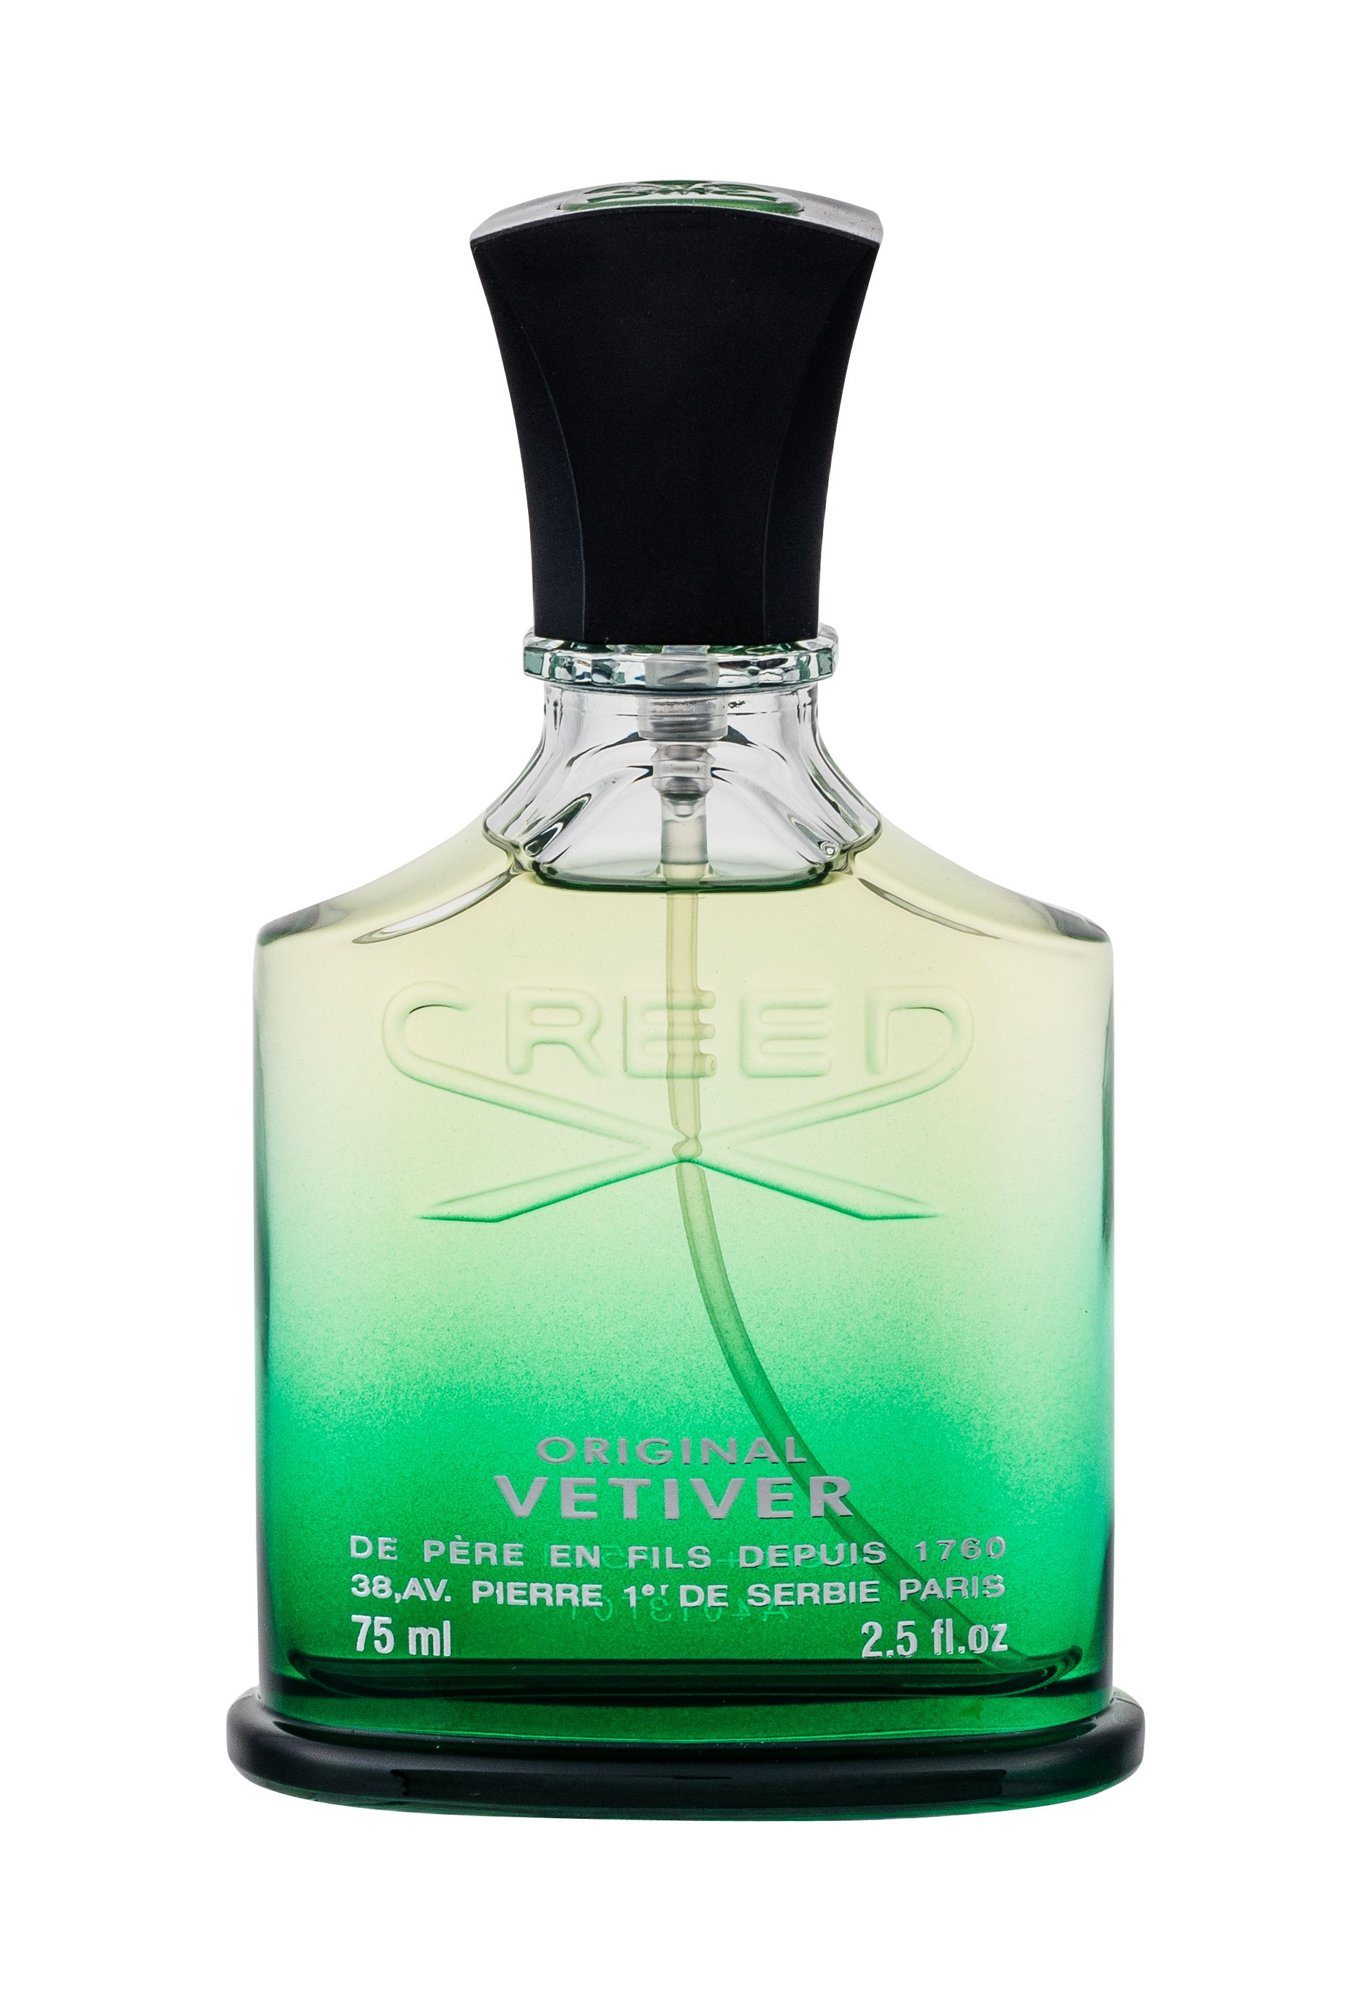 Creed Original Vetiver Eau de Parfum 75ml